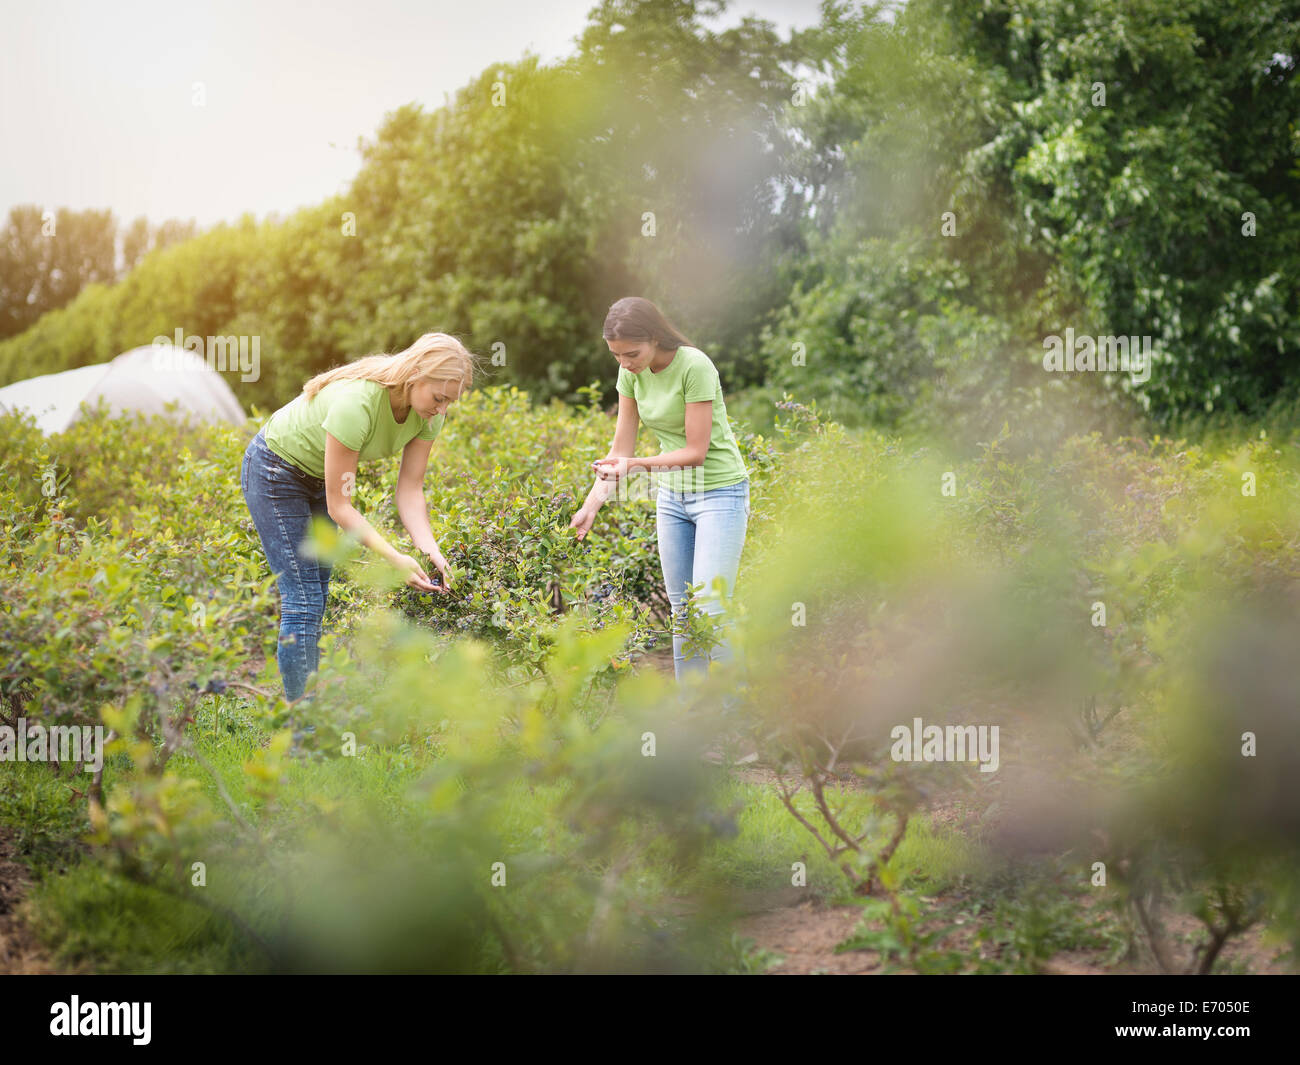 Workers picking blueberries on fruit farm Stock Photo